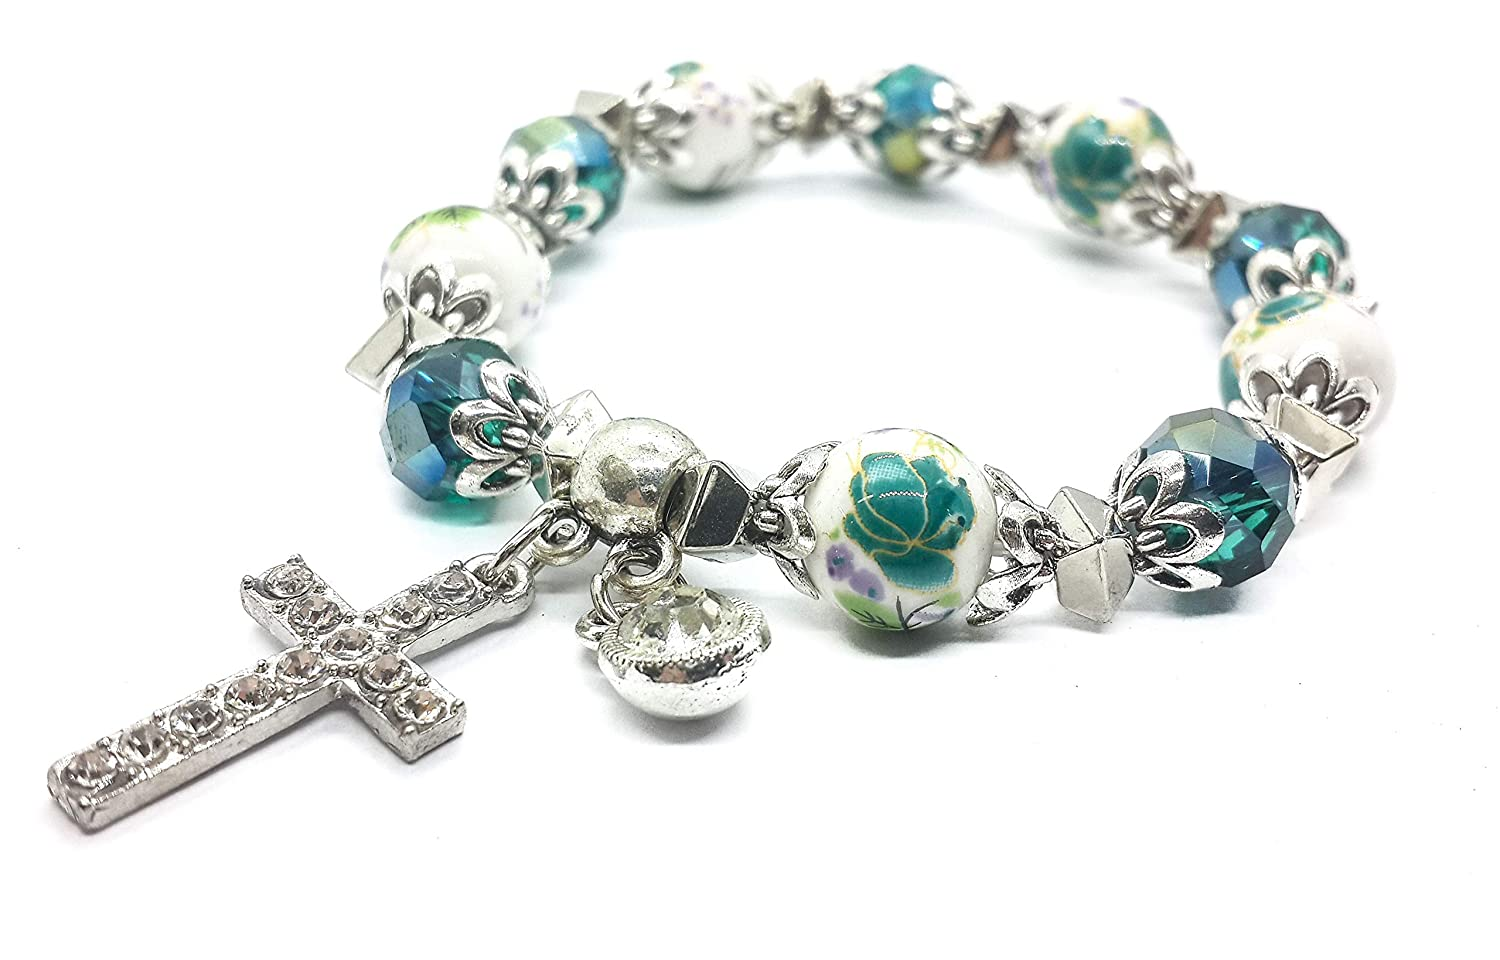 Amazon.com : Nazareth Store Religious Cross Bracelet Christian Classic  Beaded Bangle with Green Crystal Beads Sacred Gift for Teen Girls Jewelry  for Women ...